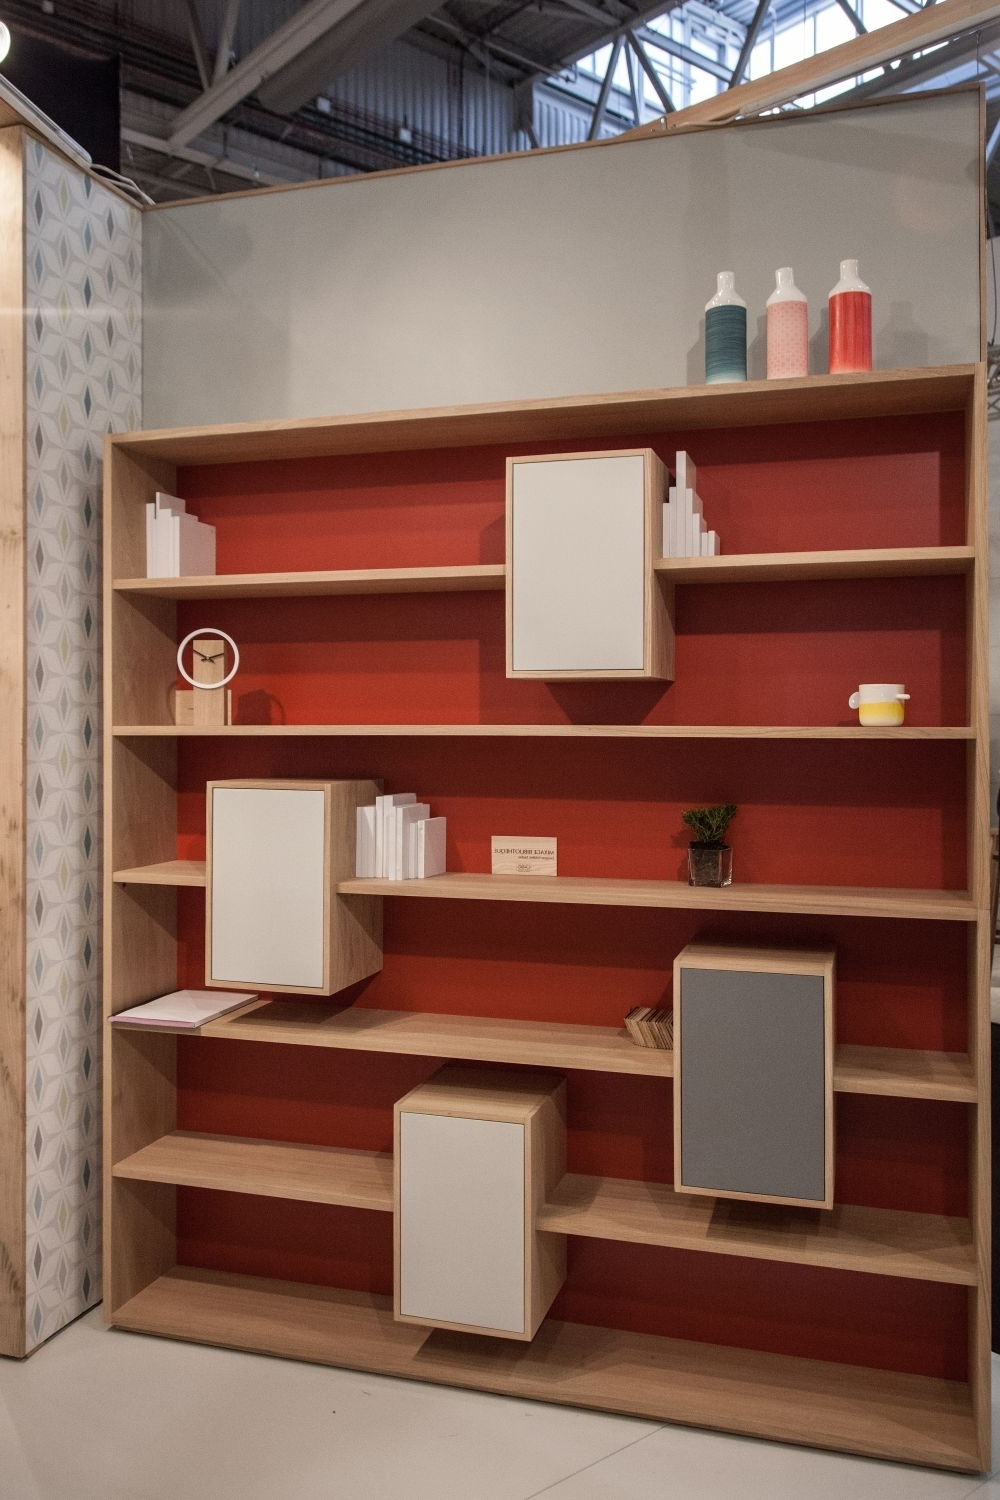 Well Known Modern Wall Bookshelves With Intricate And Unexpected Design Pertaining To Large Bookshelves Units (View 11 of 15)